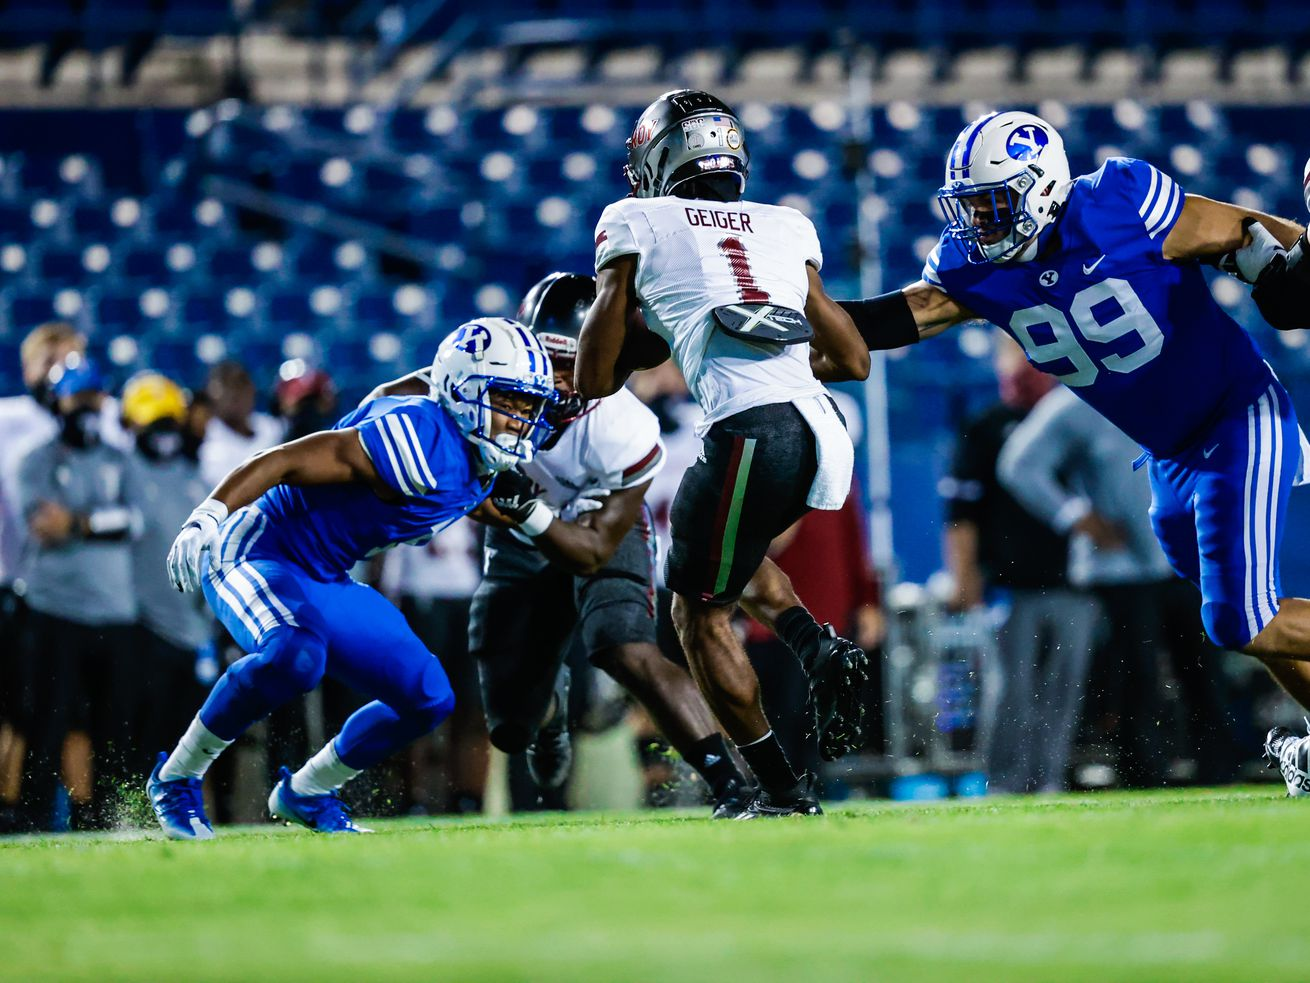 BYU football: Several new faces see significant contributions in blowout win over Troy